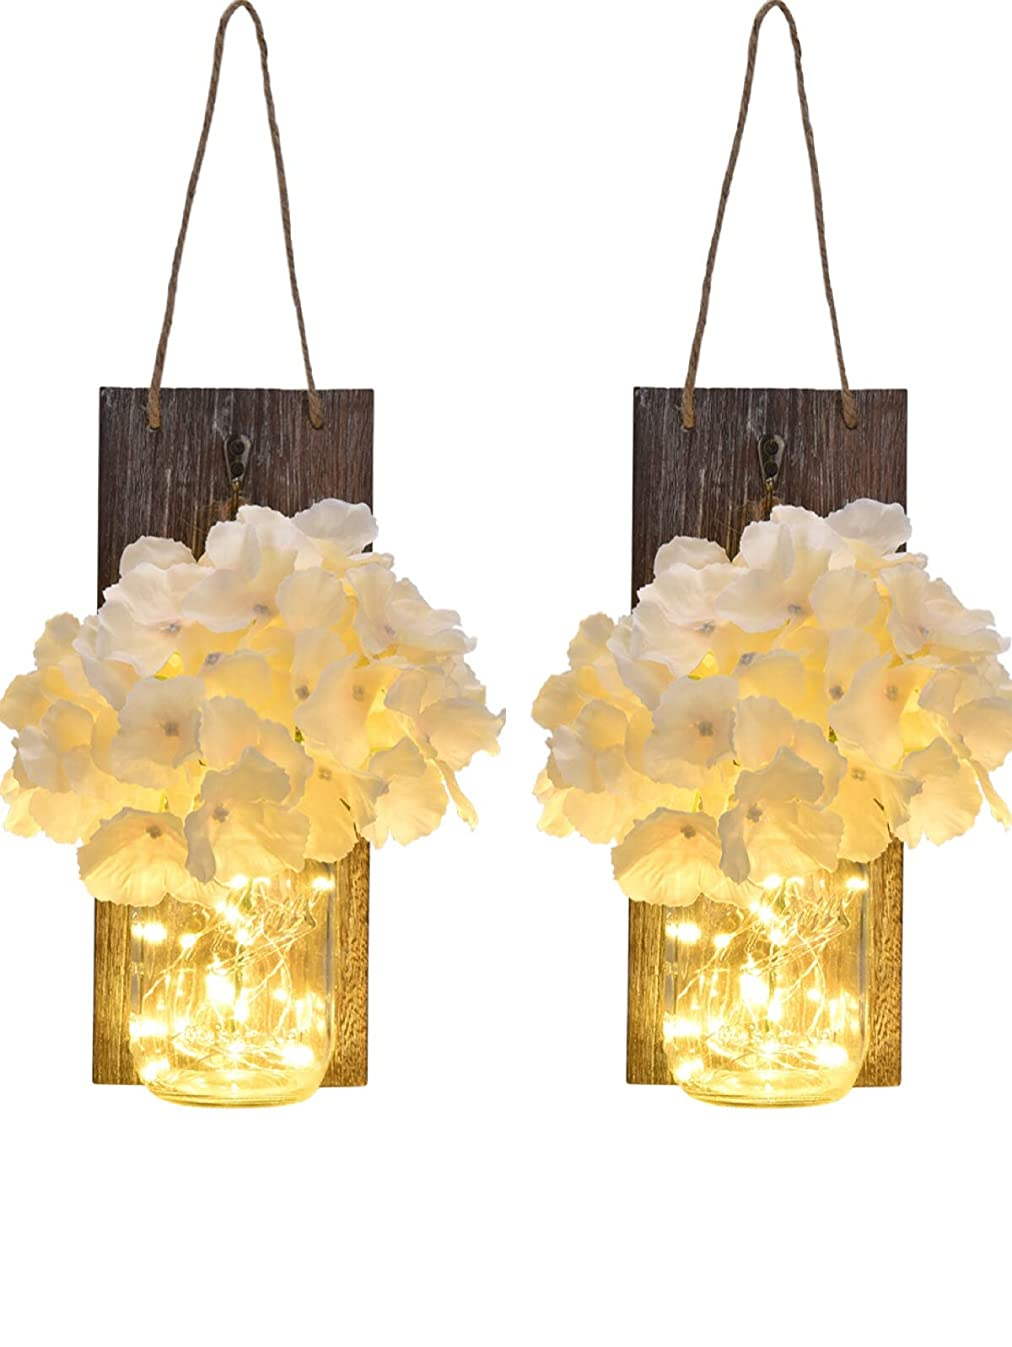 Linkbro Mason Jar Sconce Rustic Home Decor With Timer Function [2 Pack] Smarter Farmhouse Wall Decor For Living Room, Bathroom (2.Gen.), Also As Rustic Sconces, With Fairy Lights And Flowers